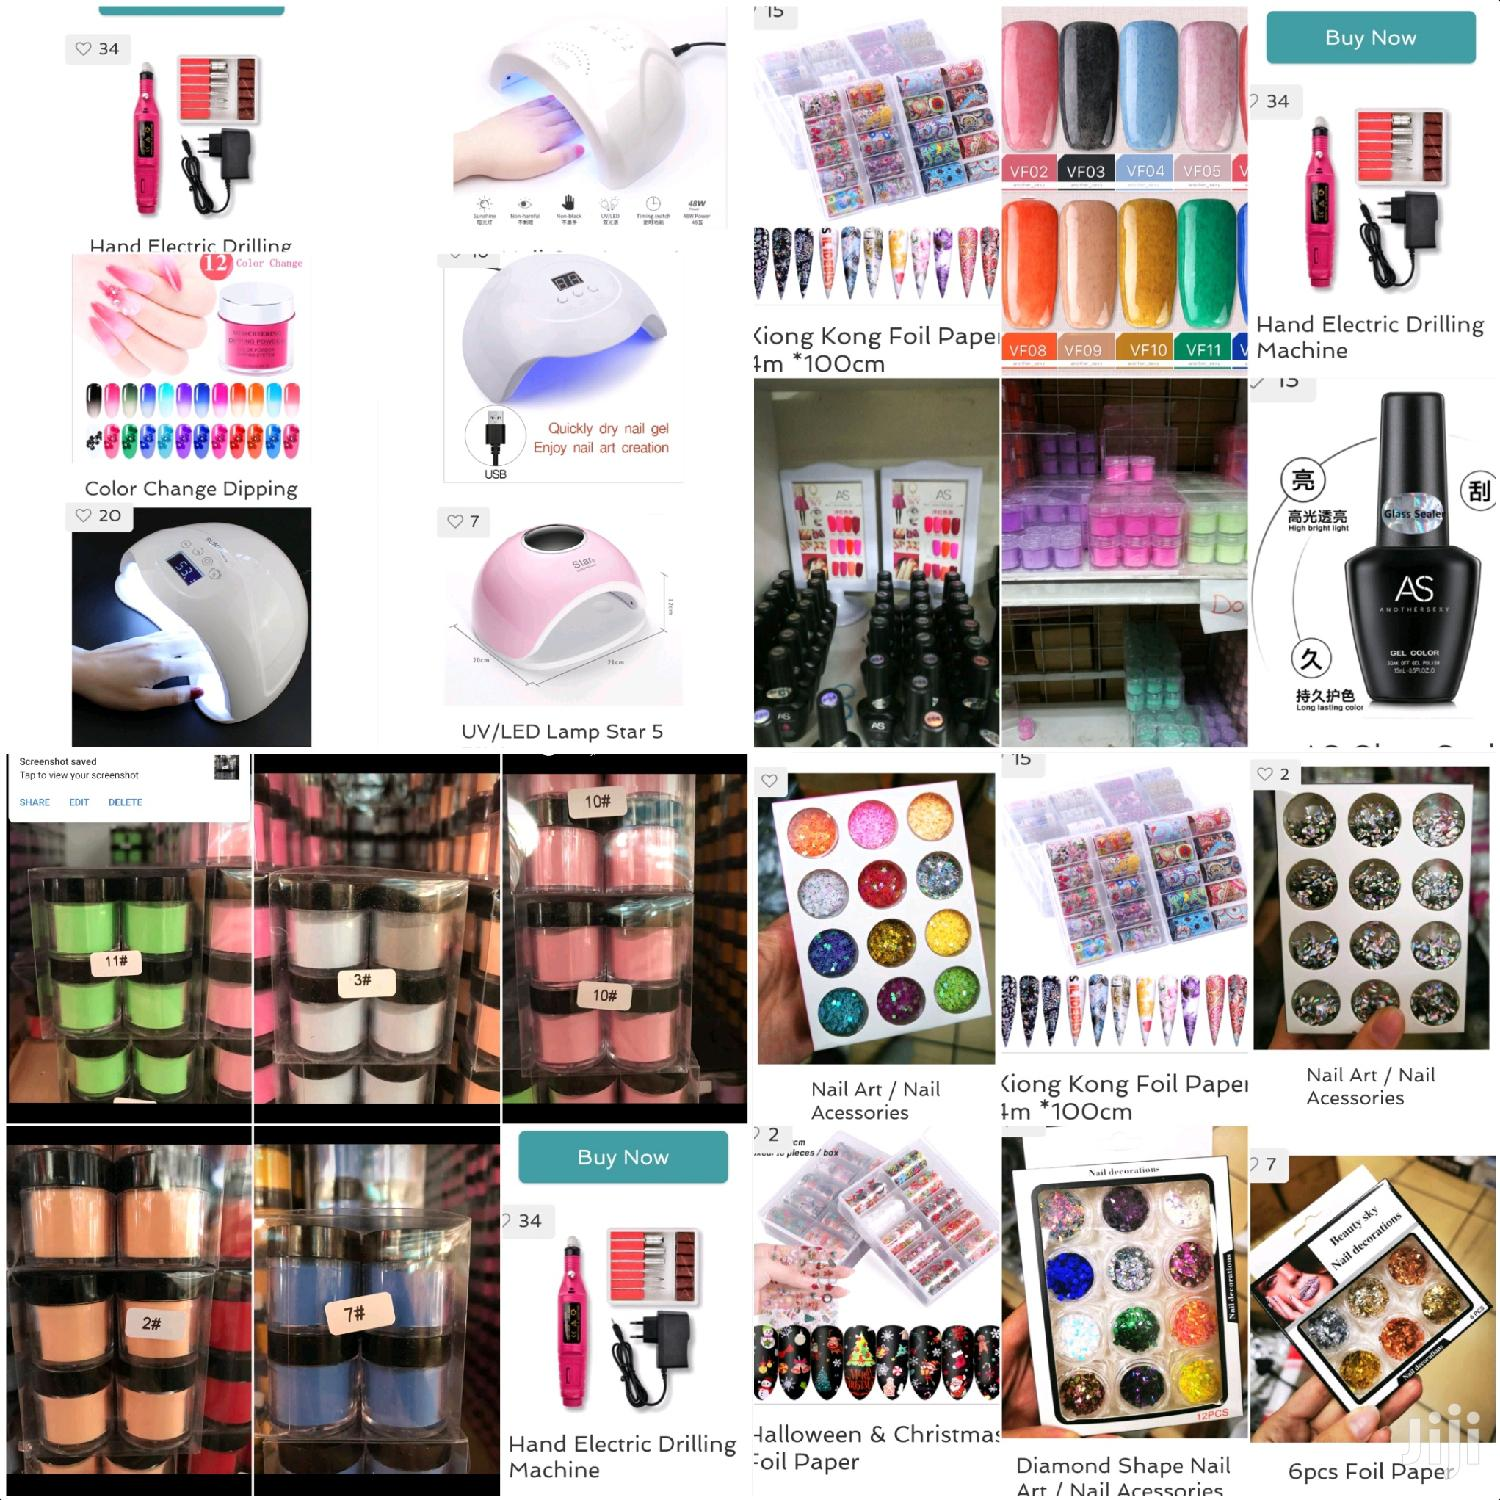 Sofi's Touch Nail Products